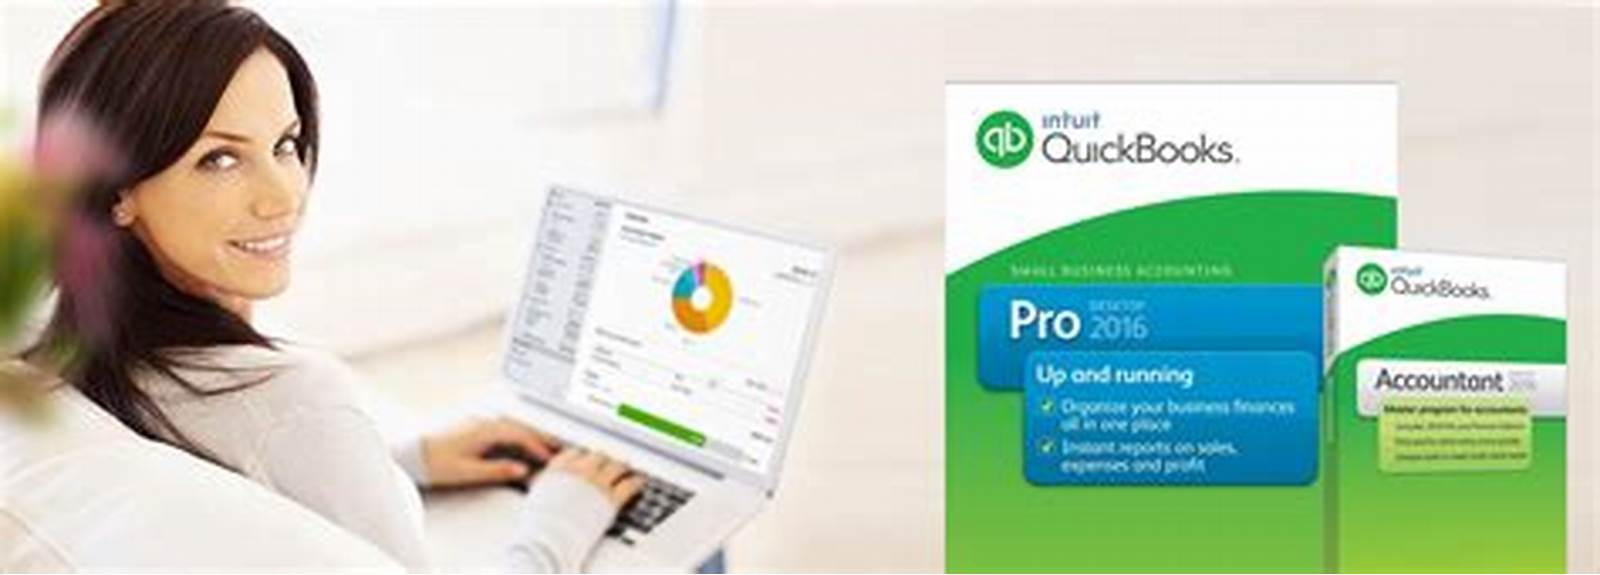 Contact for QuickBooks Premier Support, Latest News Adda